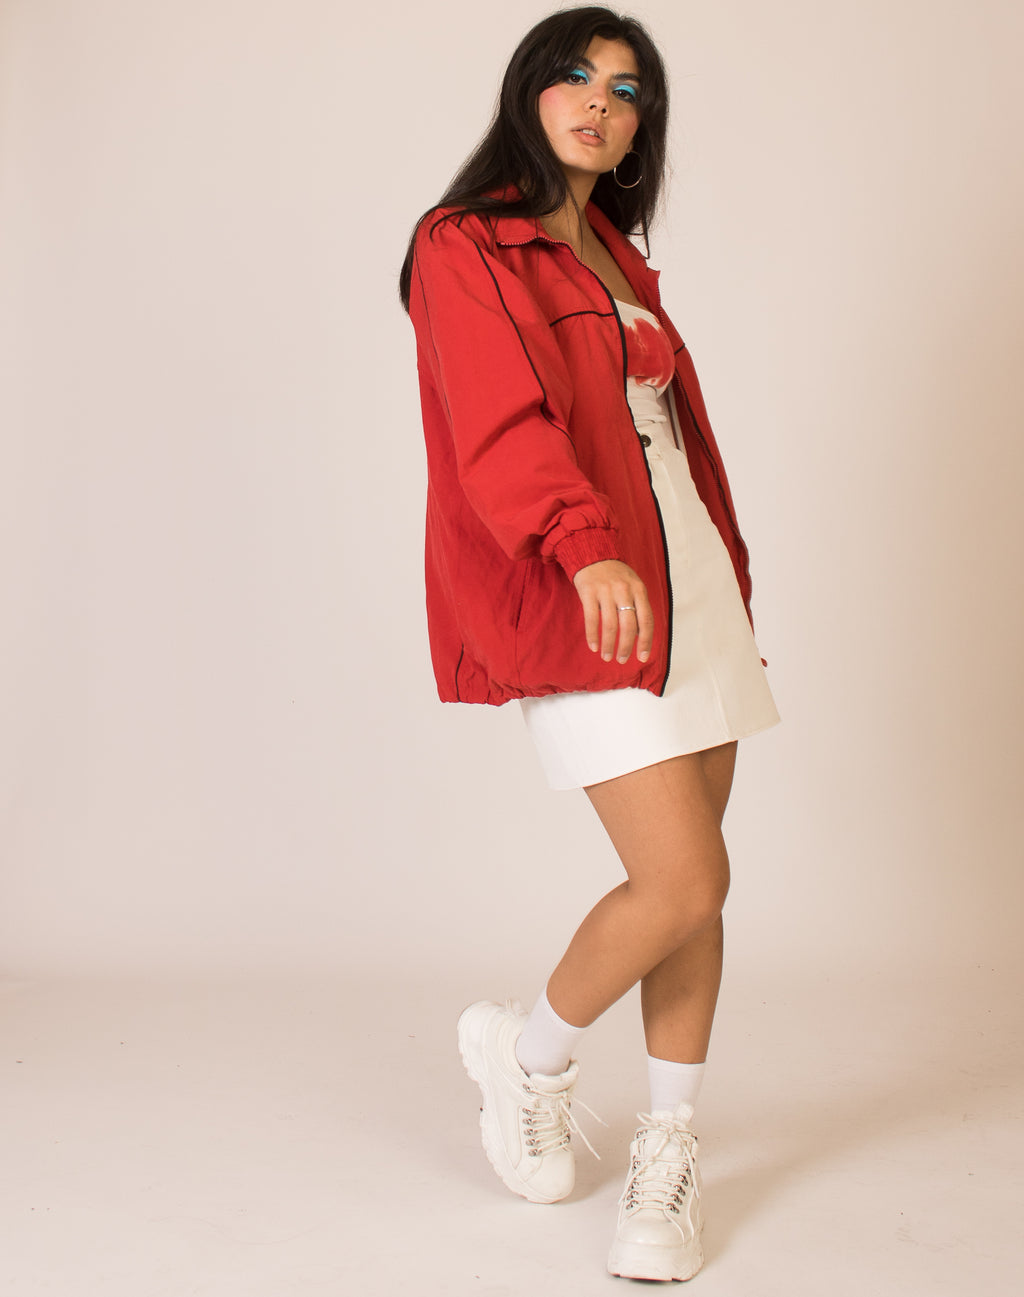 NIKE RED TRACK JACKET